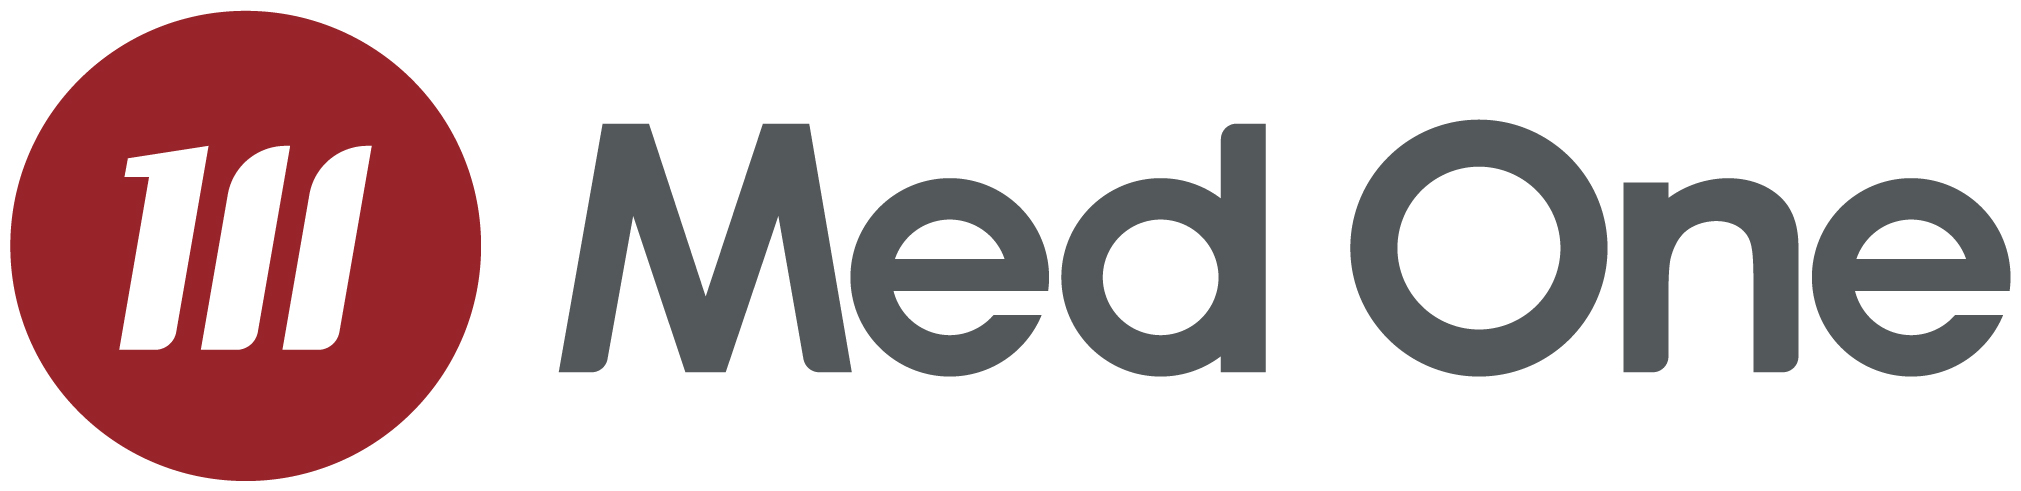 Med-One-Group-Logo-Landscape.jpg